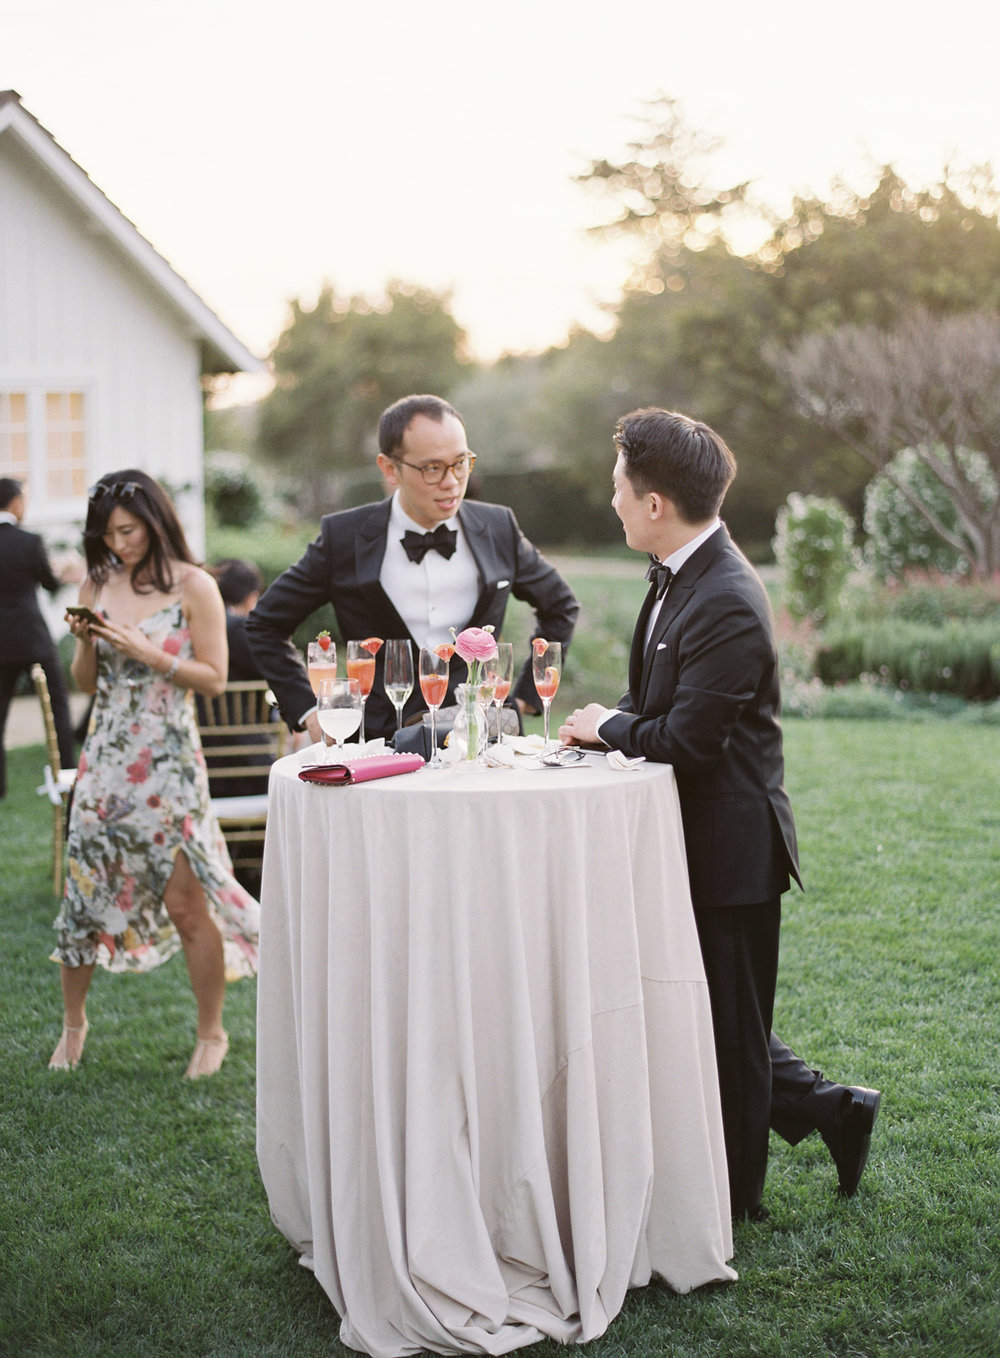 EventoftheSeason_KurtBoomerPhotography_SantaBarbaraWedding_SanYsidroRanch (26).jpg